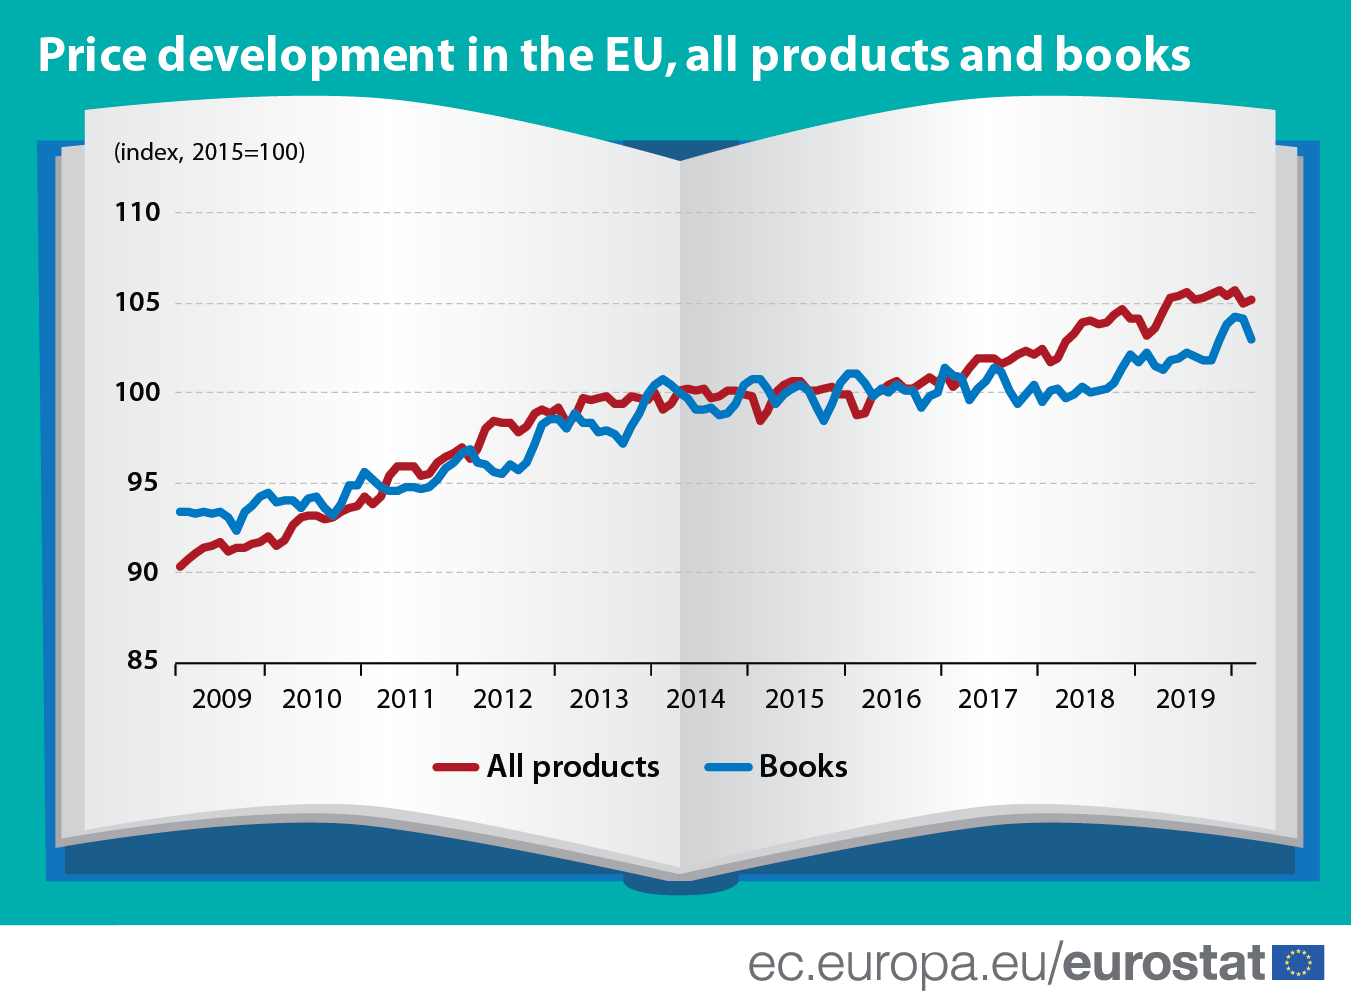 Infographic: Price development in the EU, all products and books